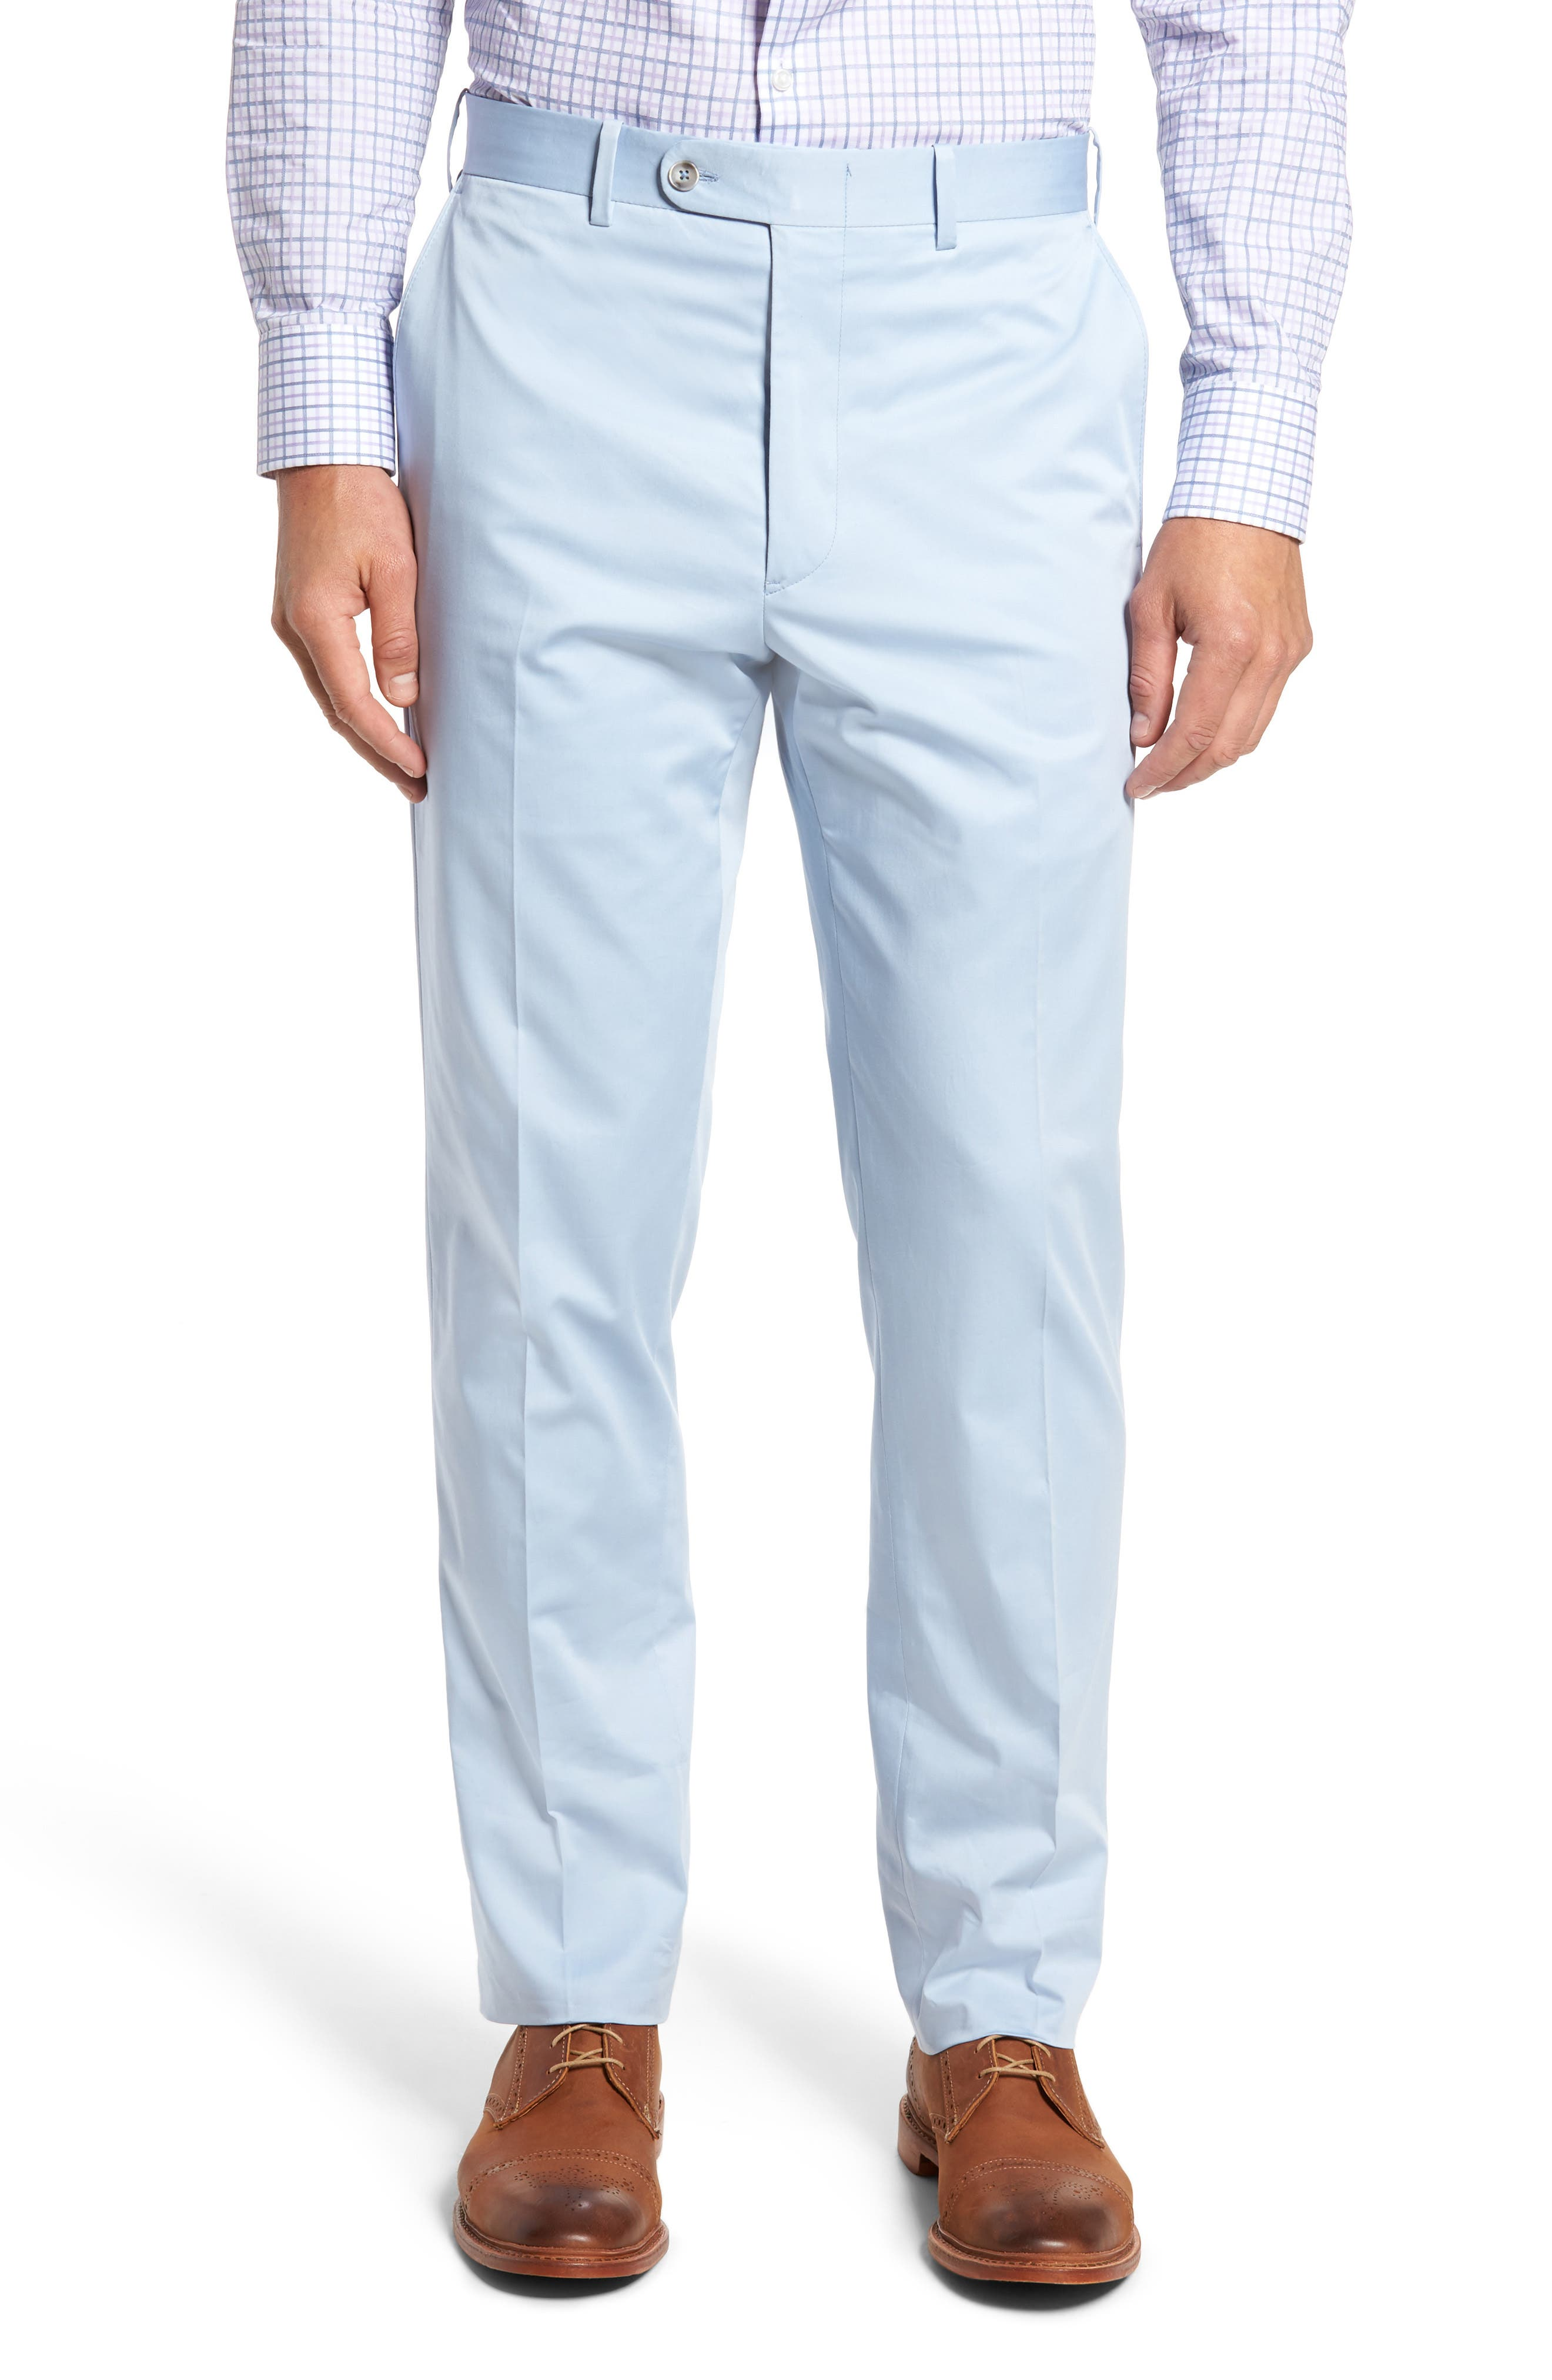 JB Britches Flat Front Solid Stretch Cotton Trousers